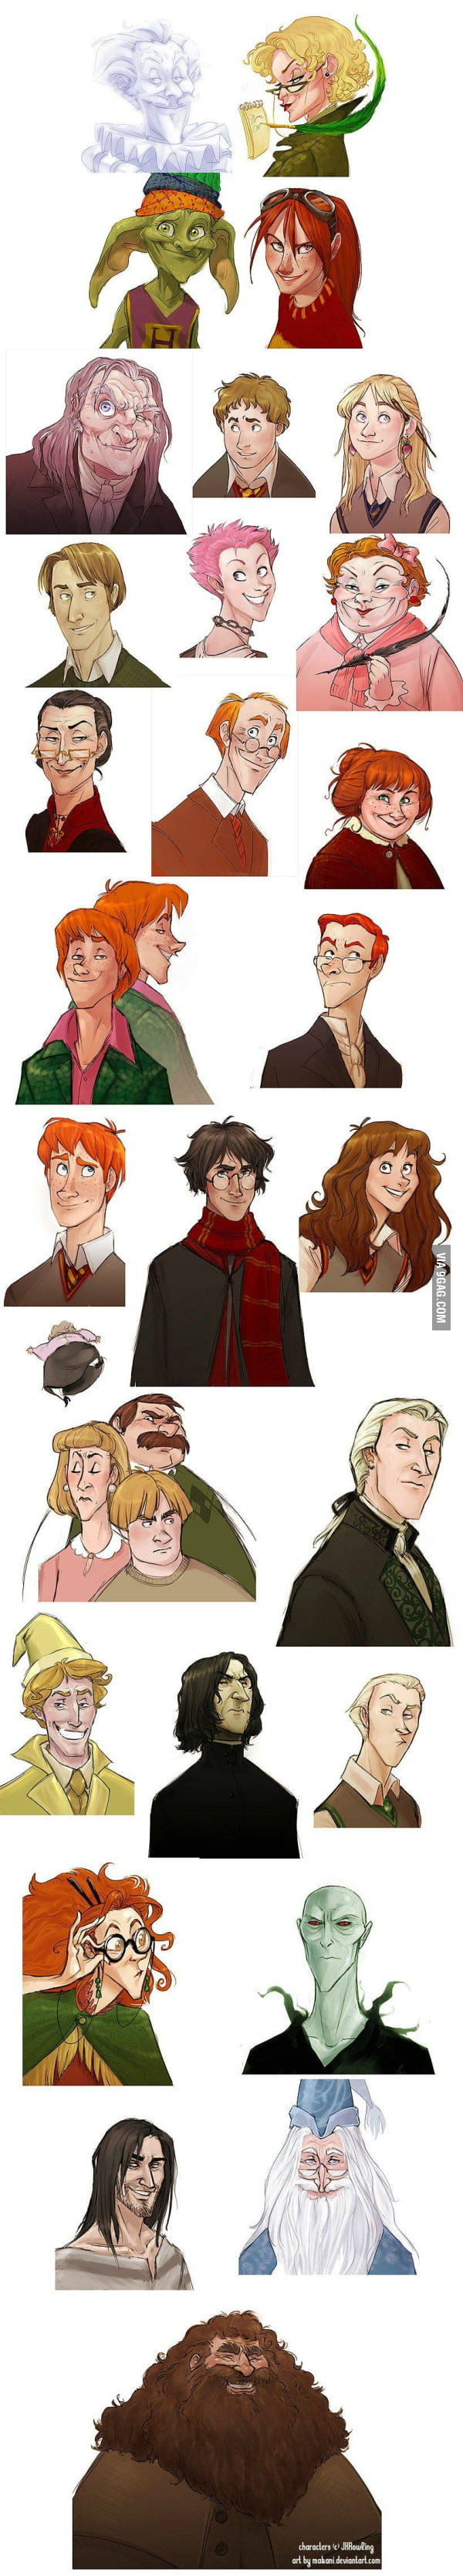 Harry Potter as a Disney movie